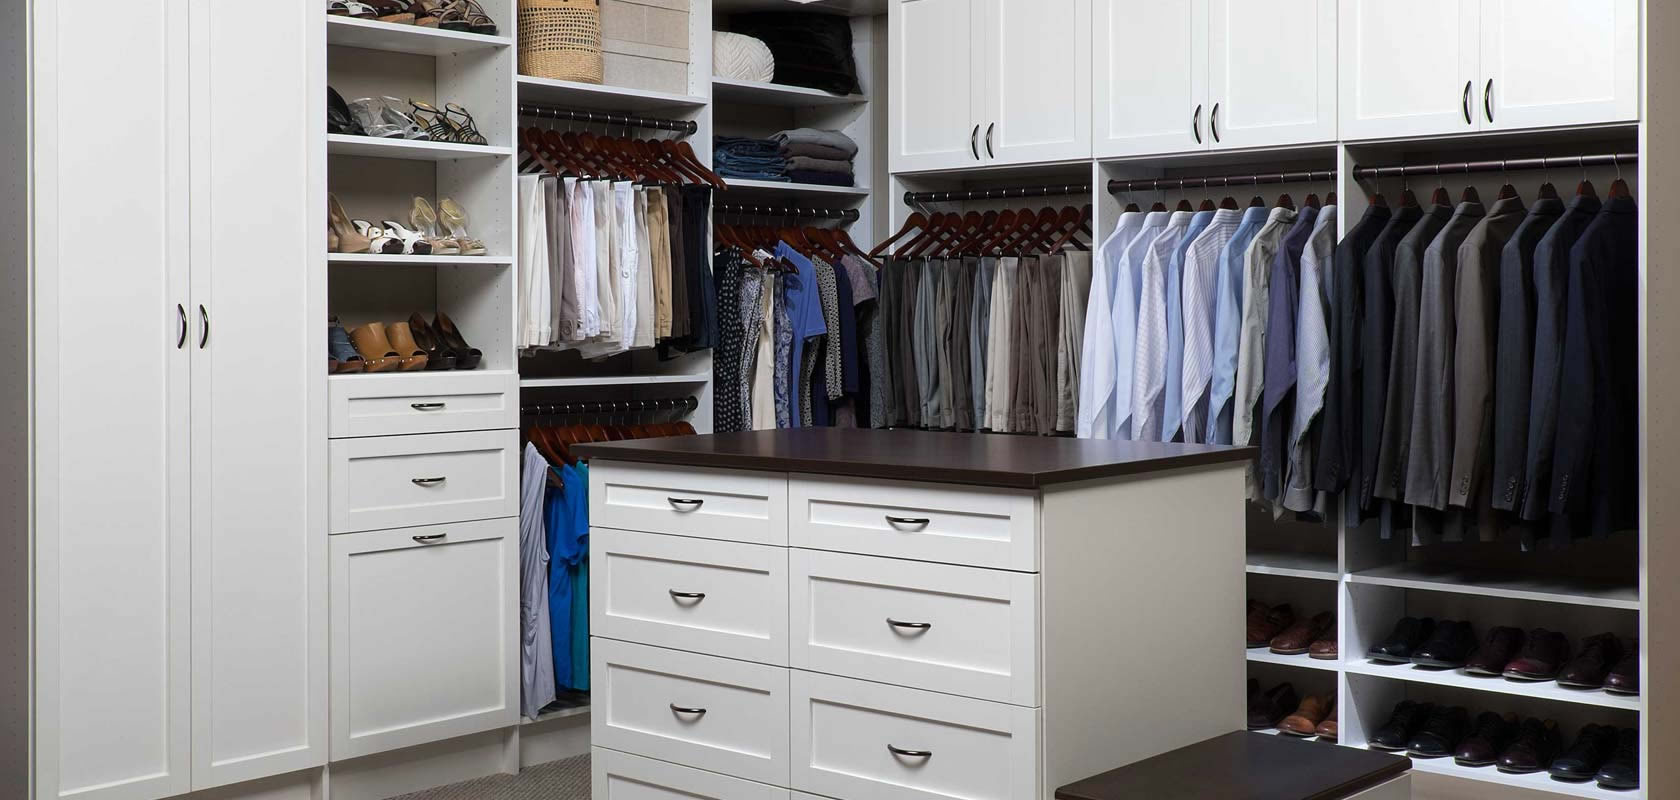 flagstaff custom closets